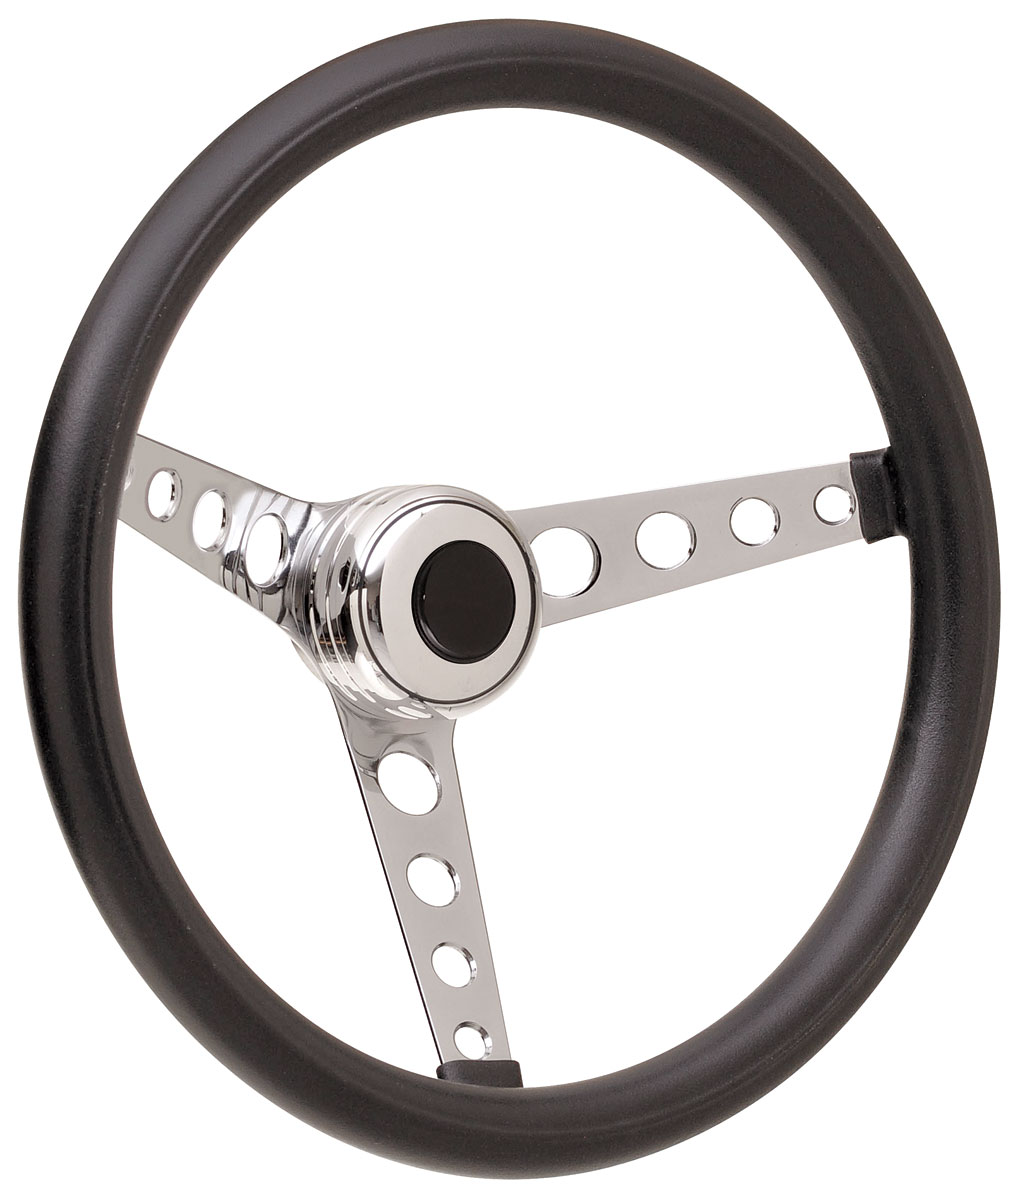 Photo of Steering Wheel Kits, Classic Foam Tall Cap - Polished with black center